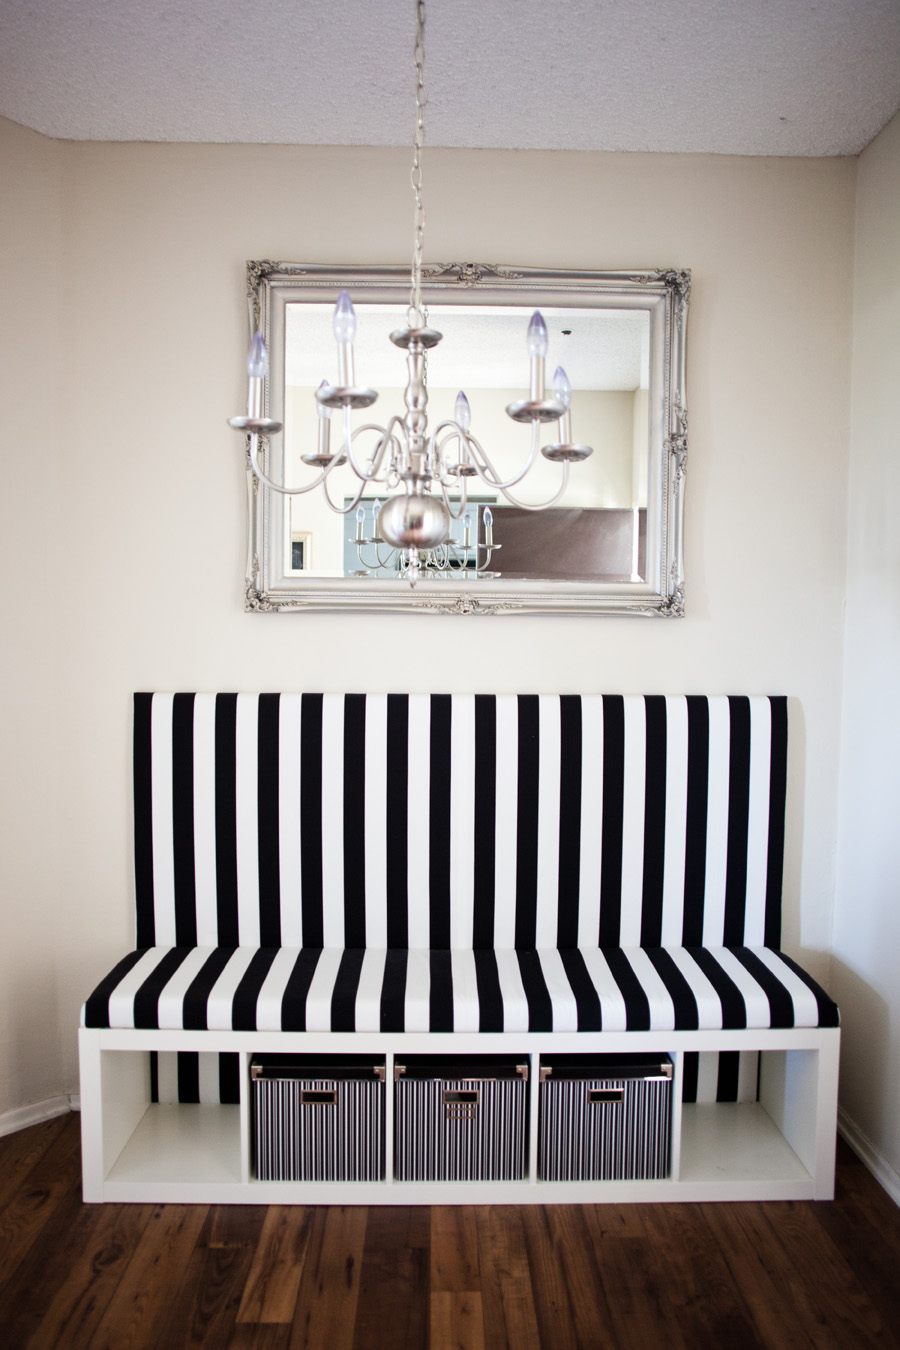 Dining room banquette bench